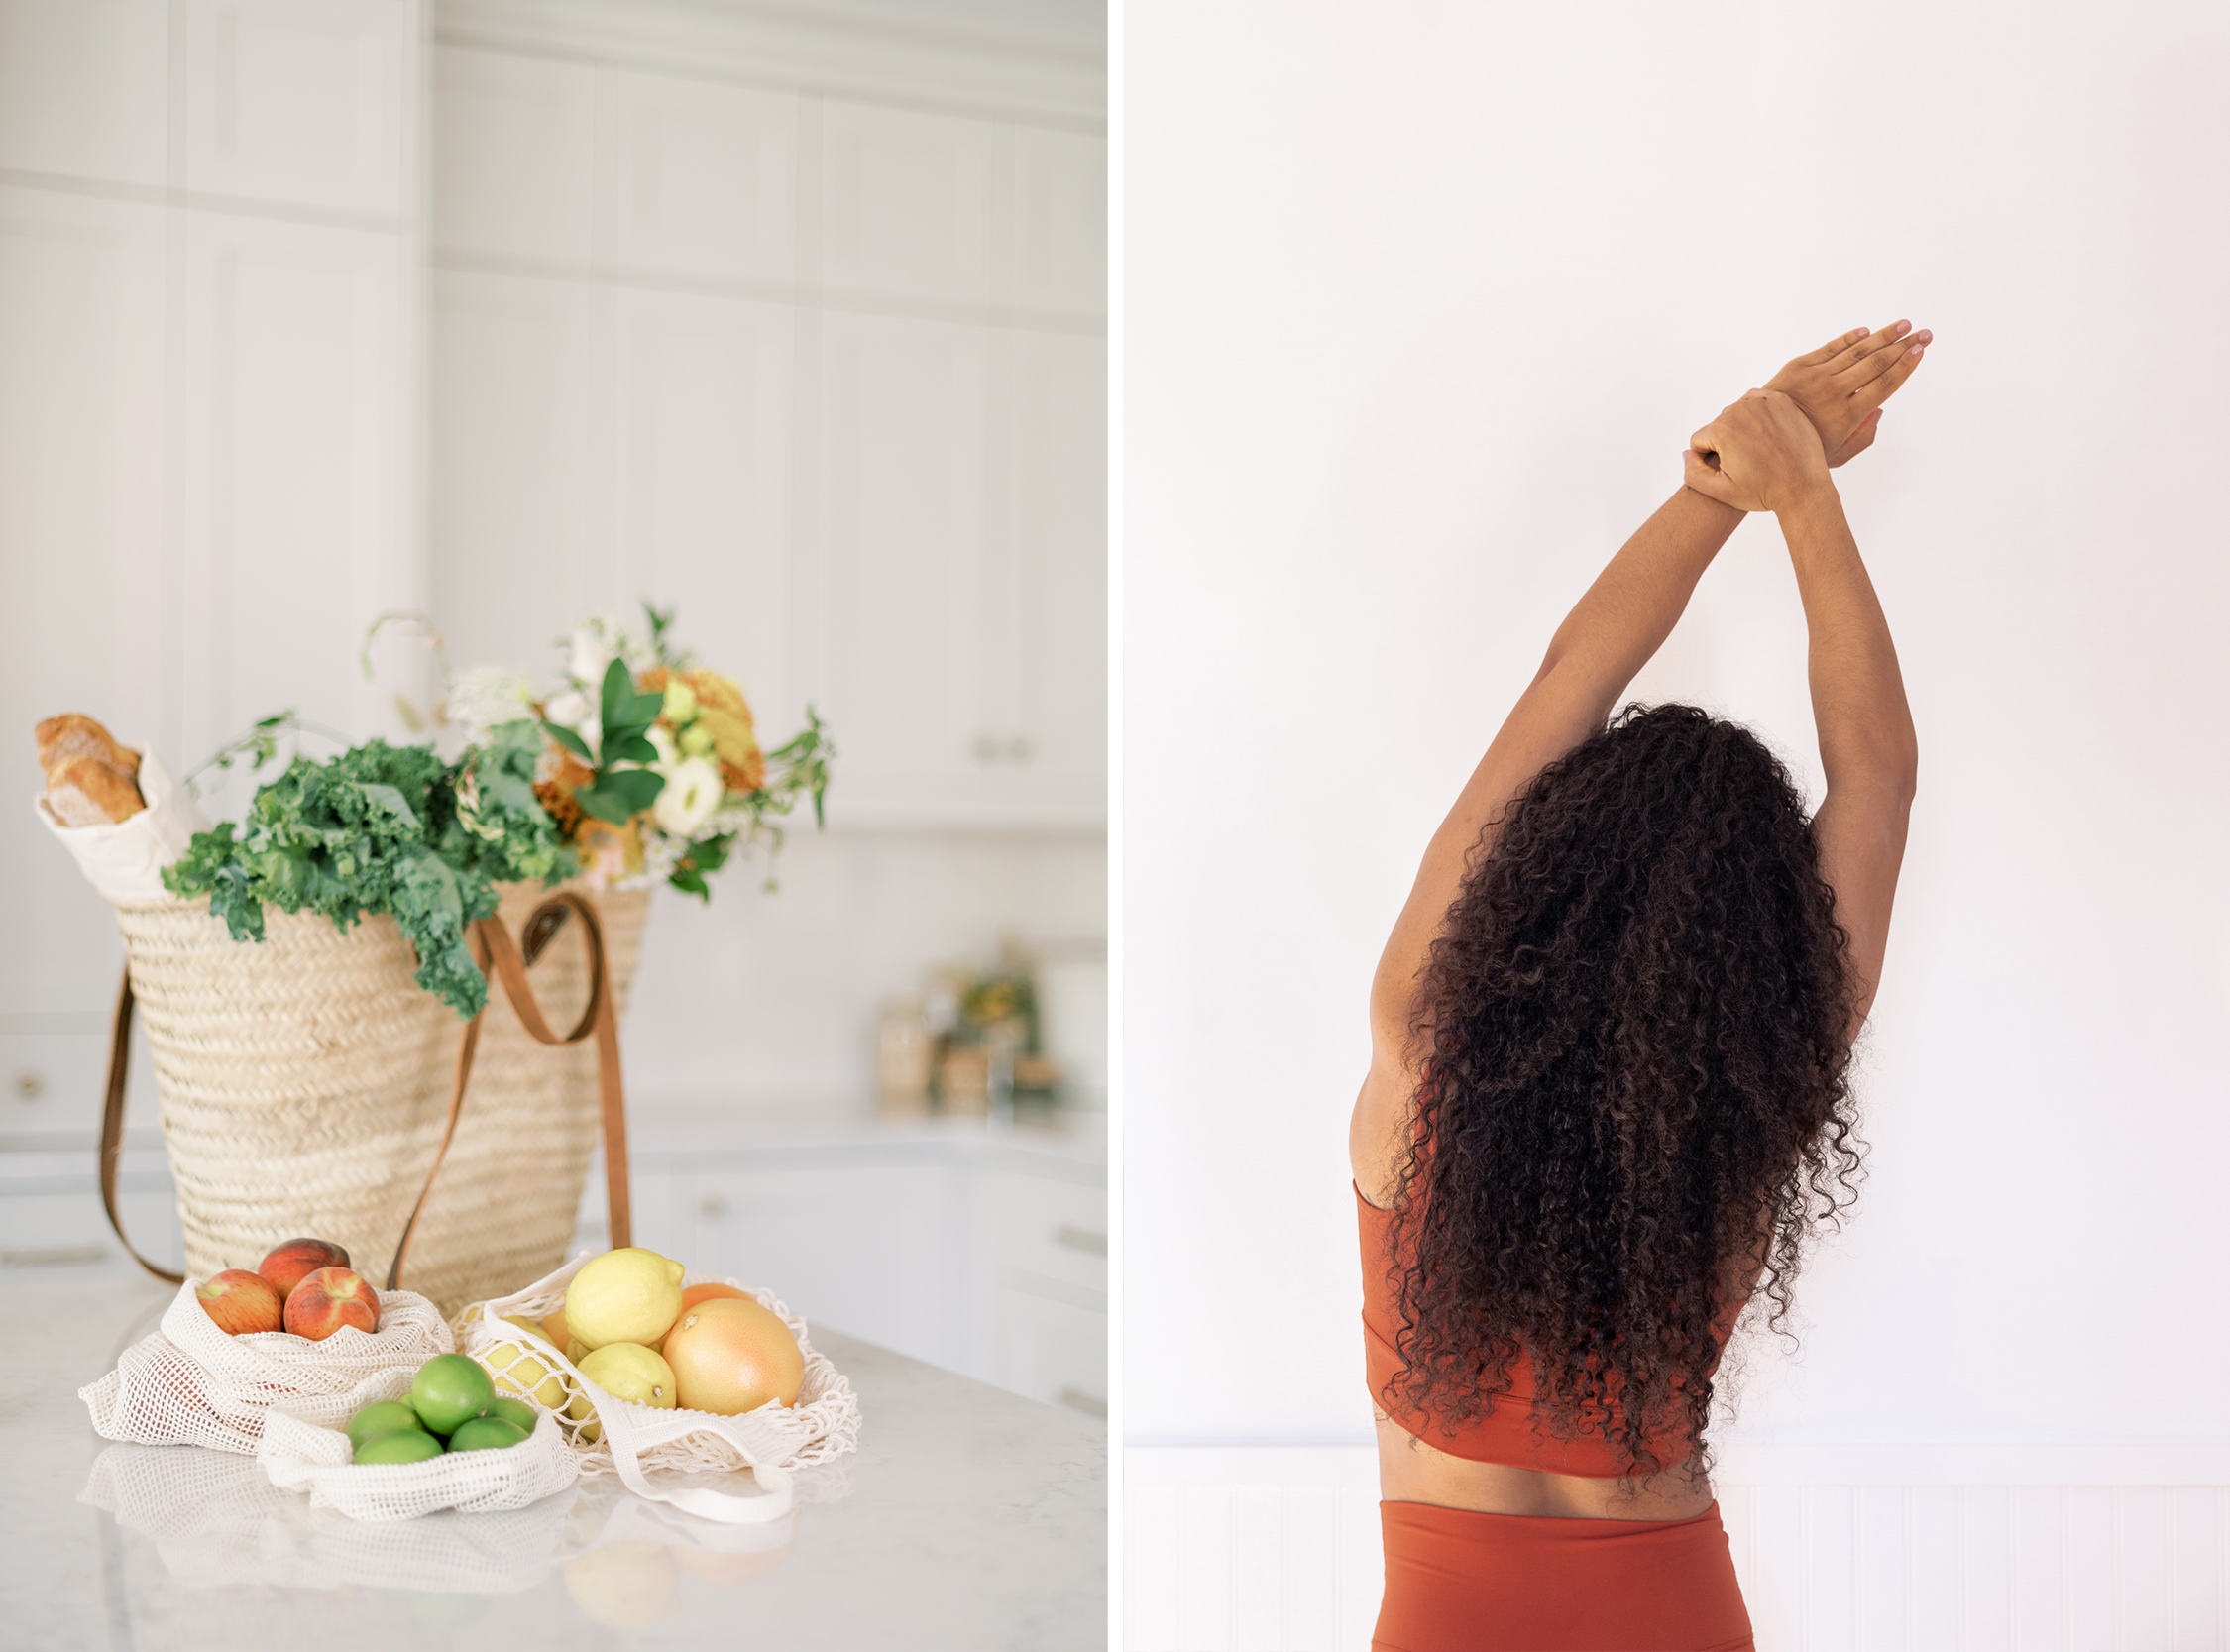 healthy food and person stretching